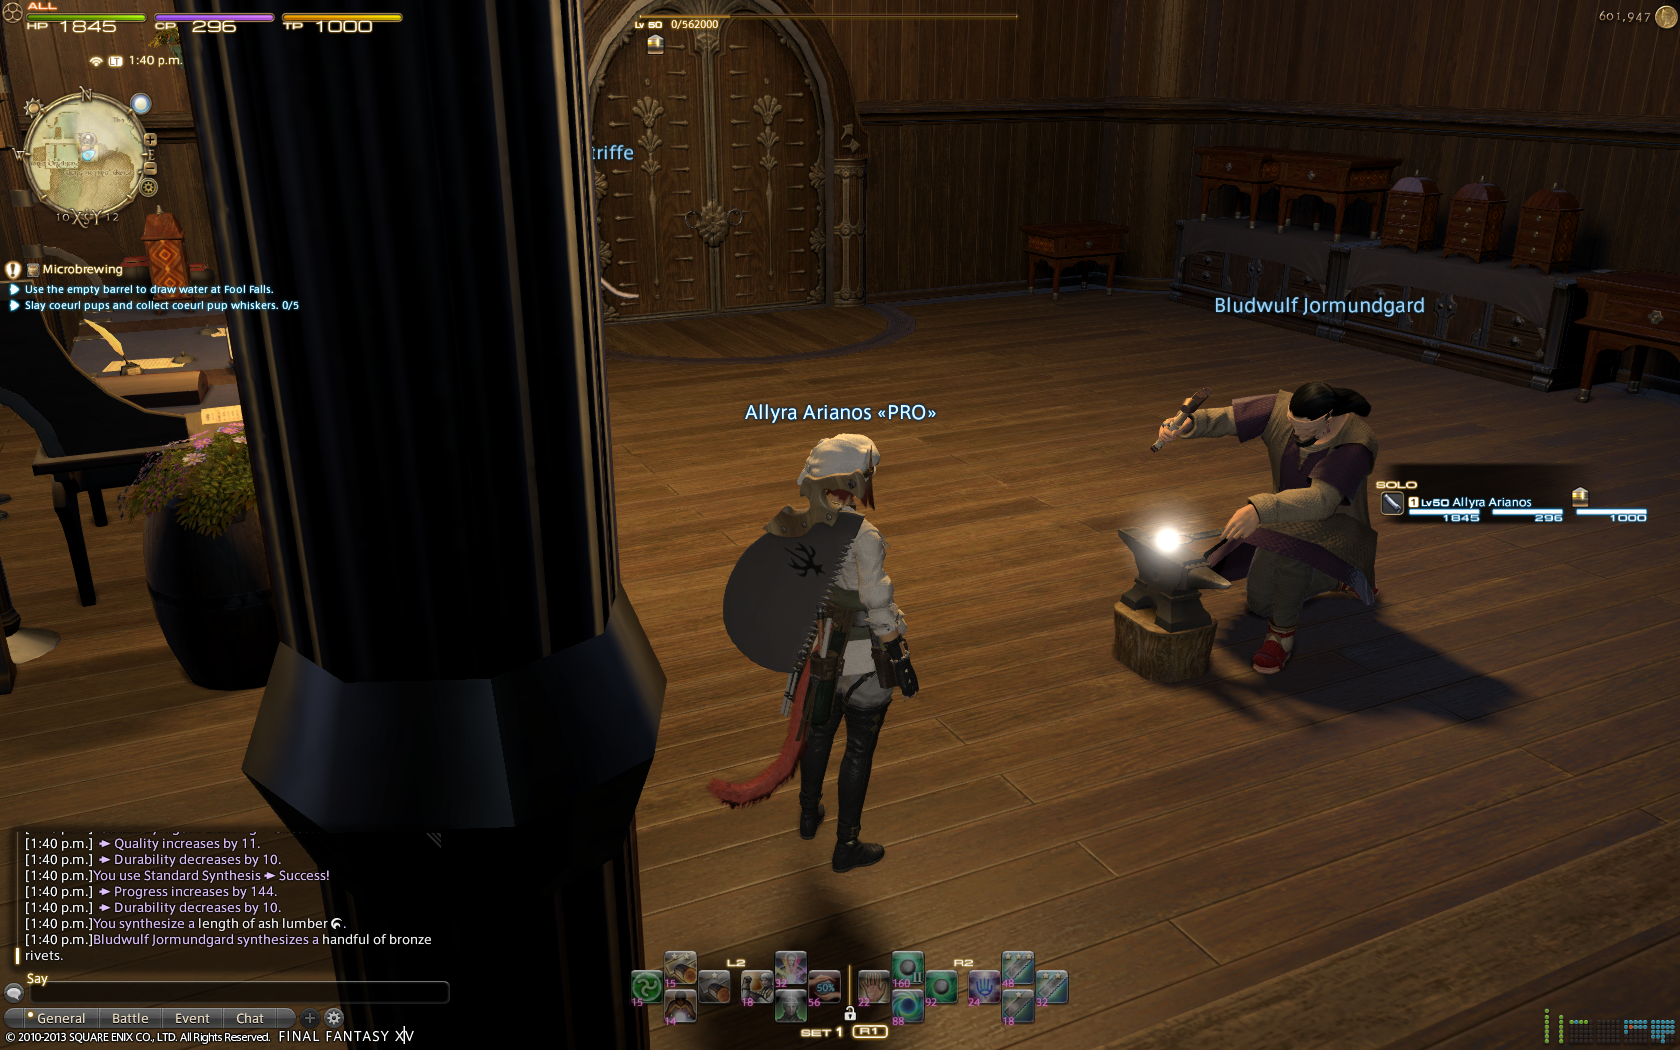 ksandra  something titans mods spam server also attack ff14